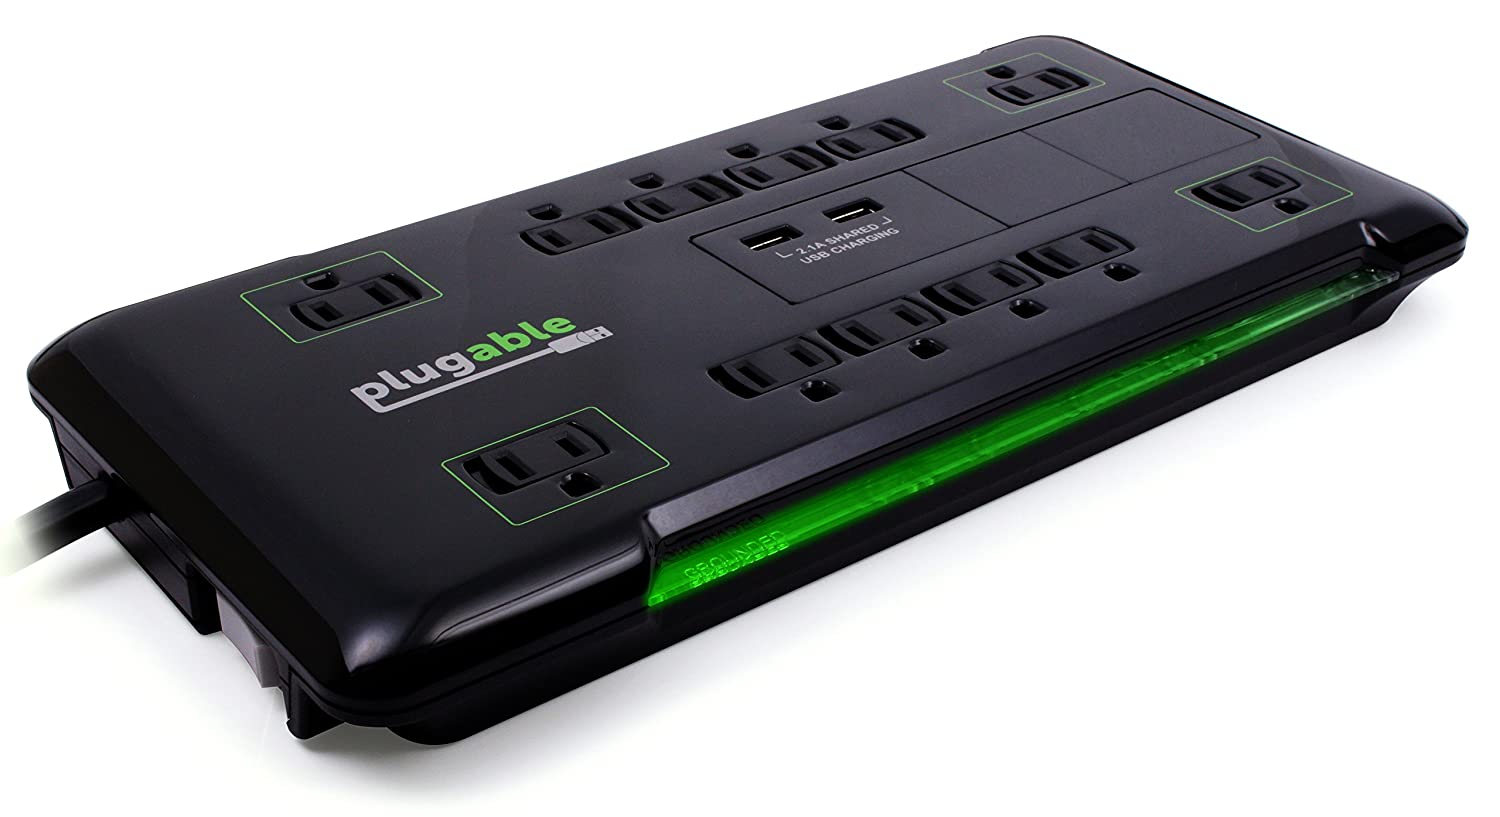 Plugable 12 AC Outlet Surge Protector - 25 Foot Power Cord with 2 Built-in USB Ports (10.5W USB Total) (Black)